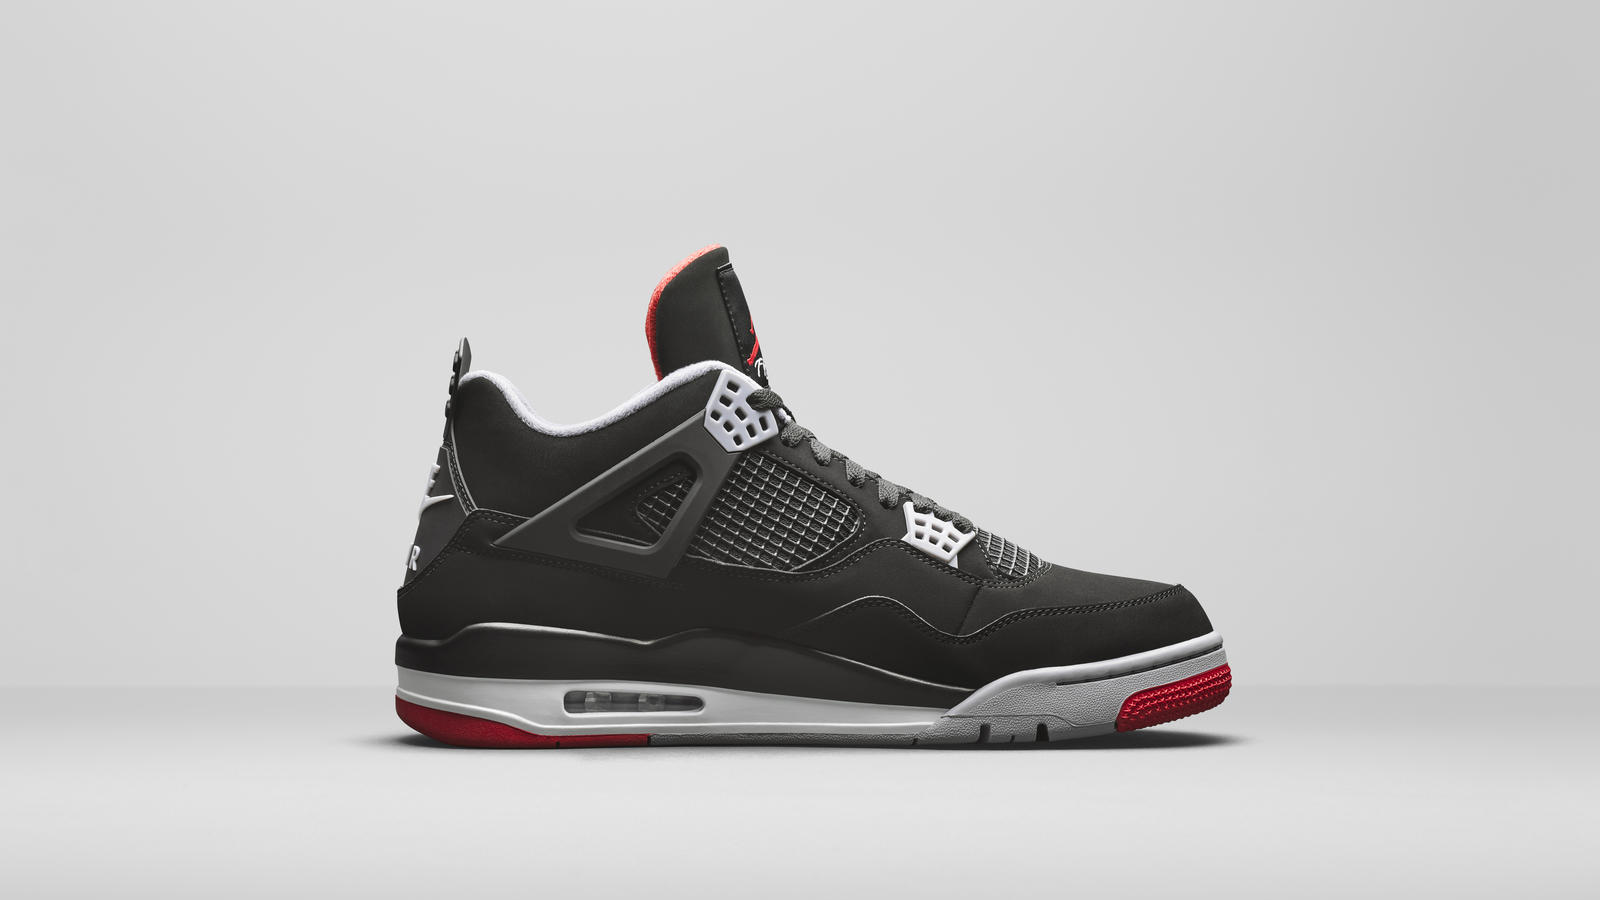 Air Jordan 4 Bred Official Images and Release Date - Nike News